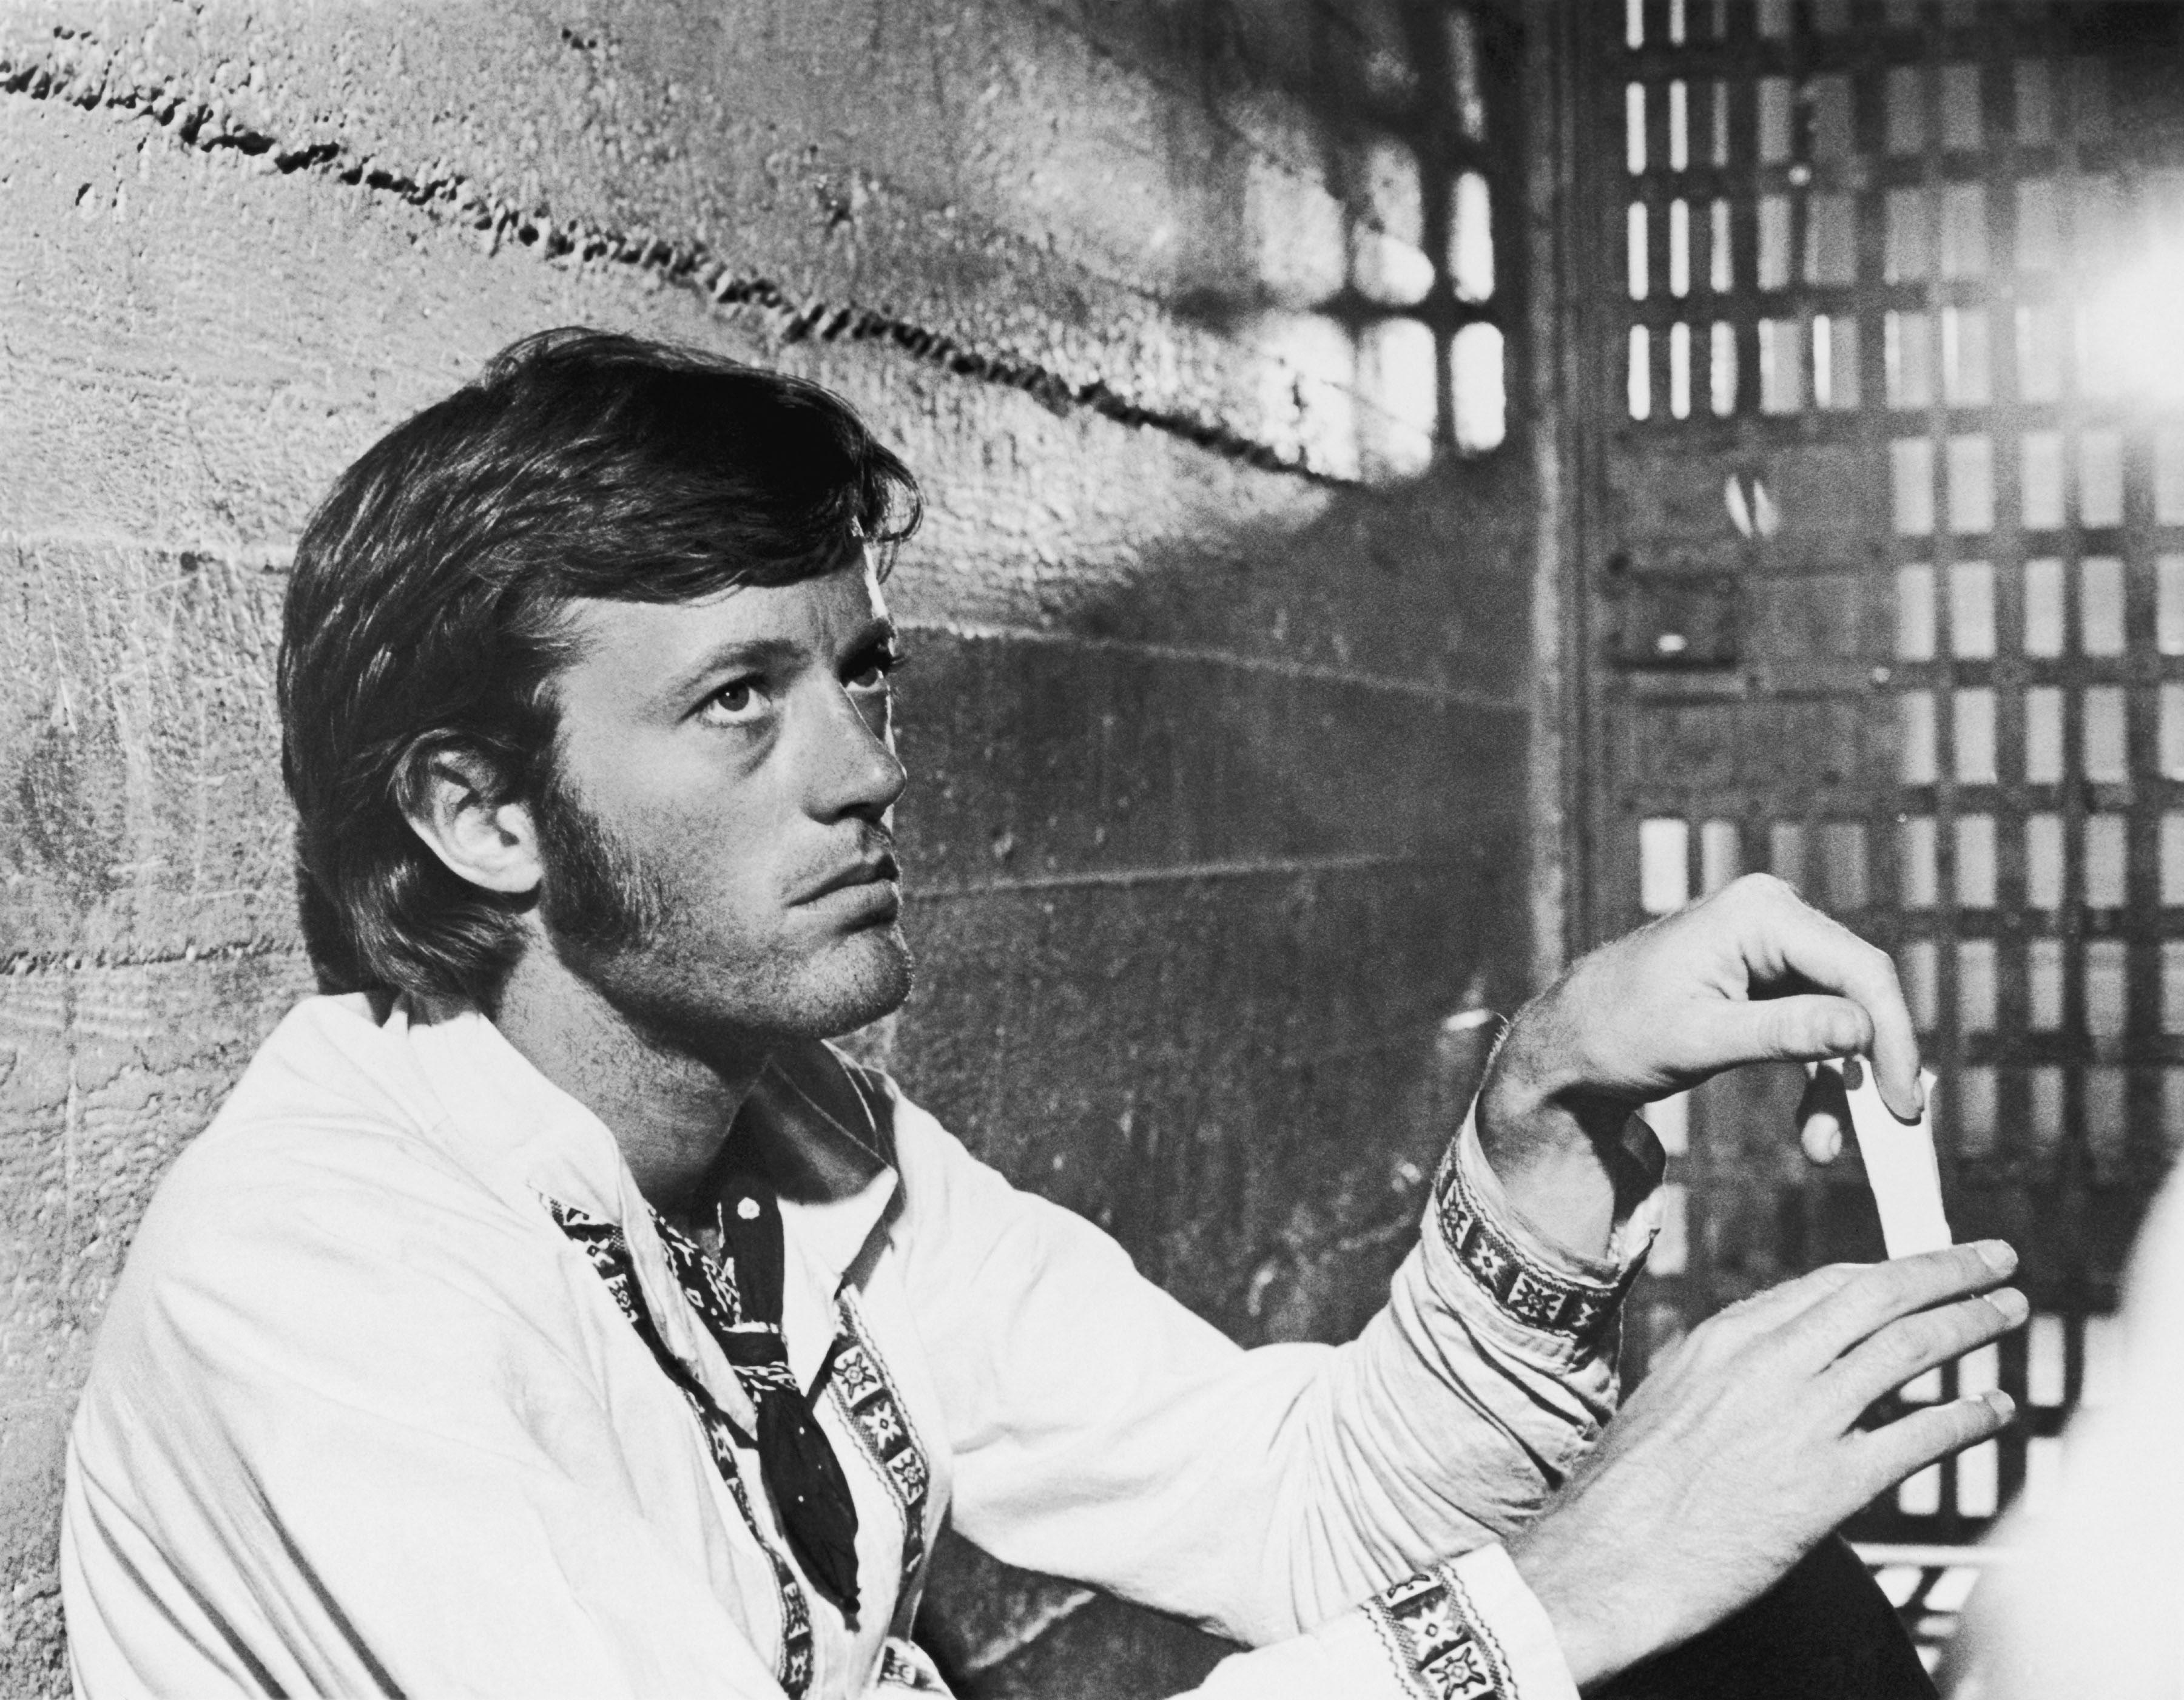 Peter Fonda Has Died at 79 After Respiratory Failure